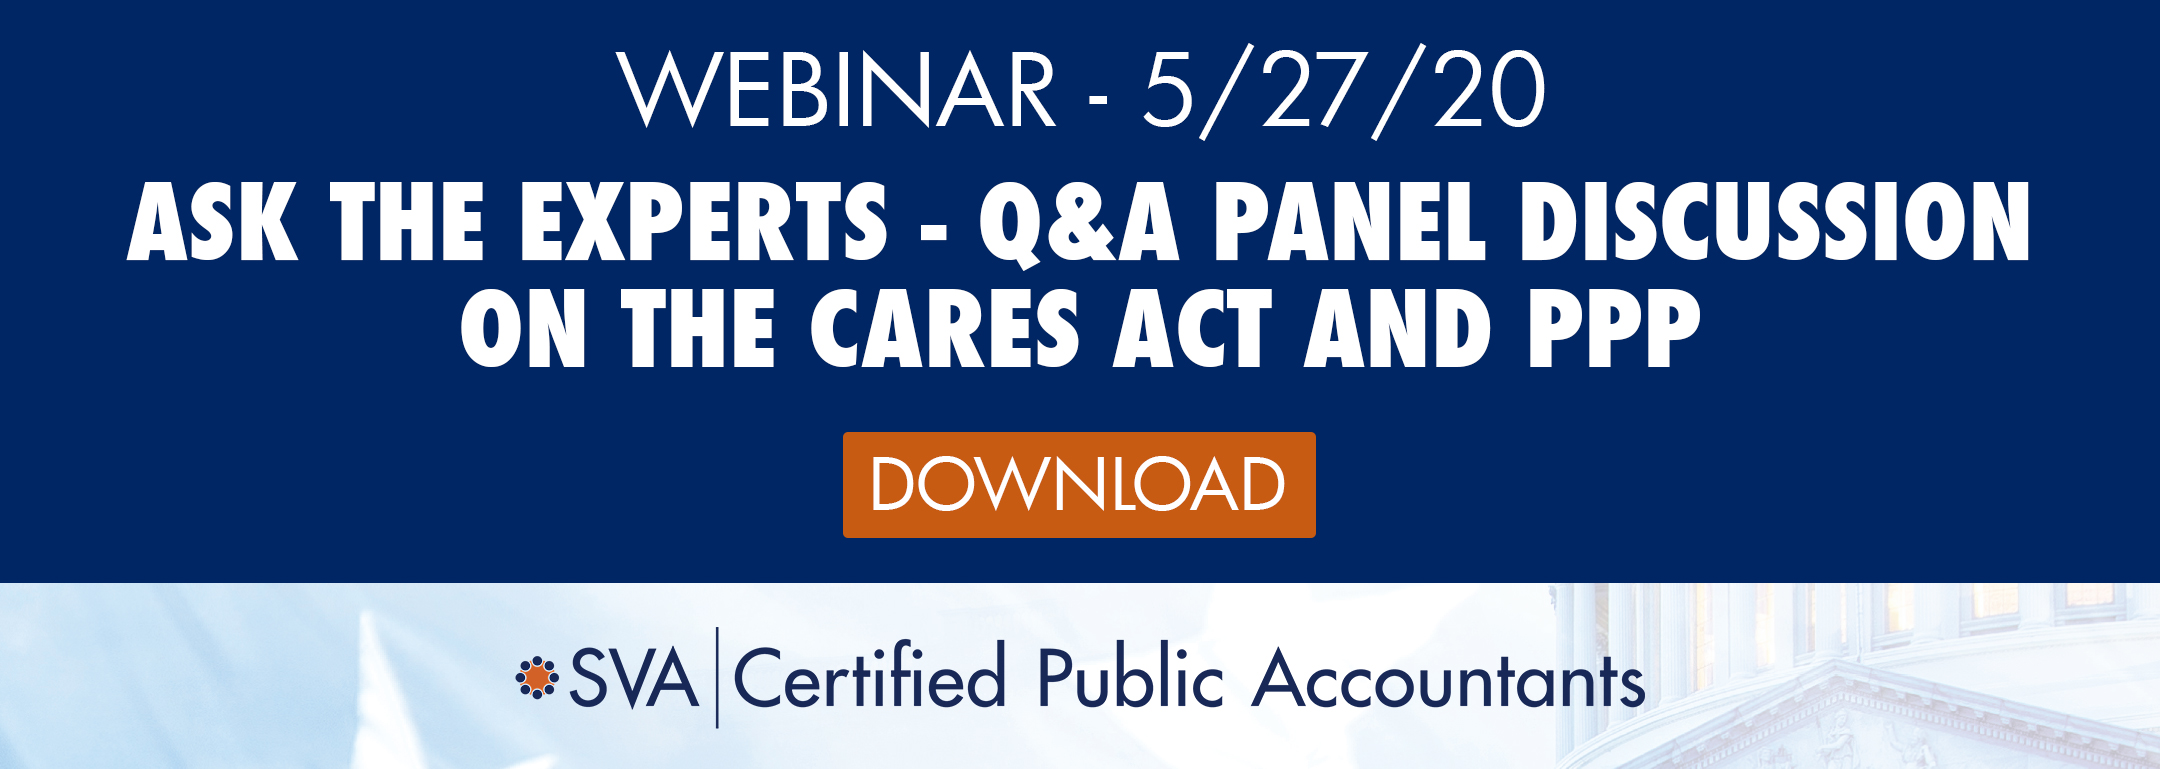 sba-and-ppp-qa-panel-webinar-download